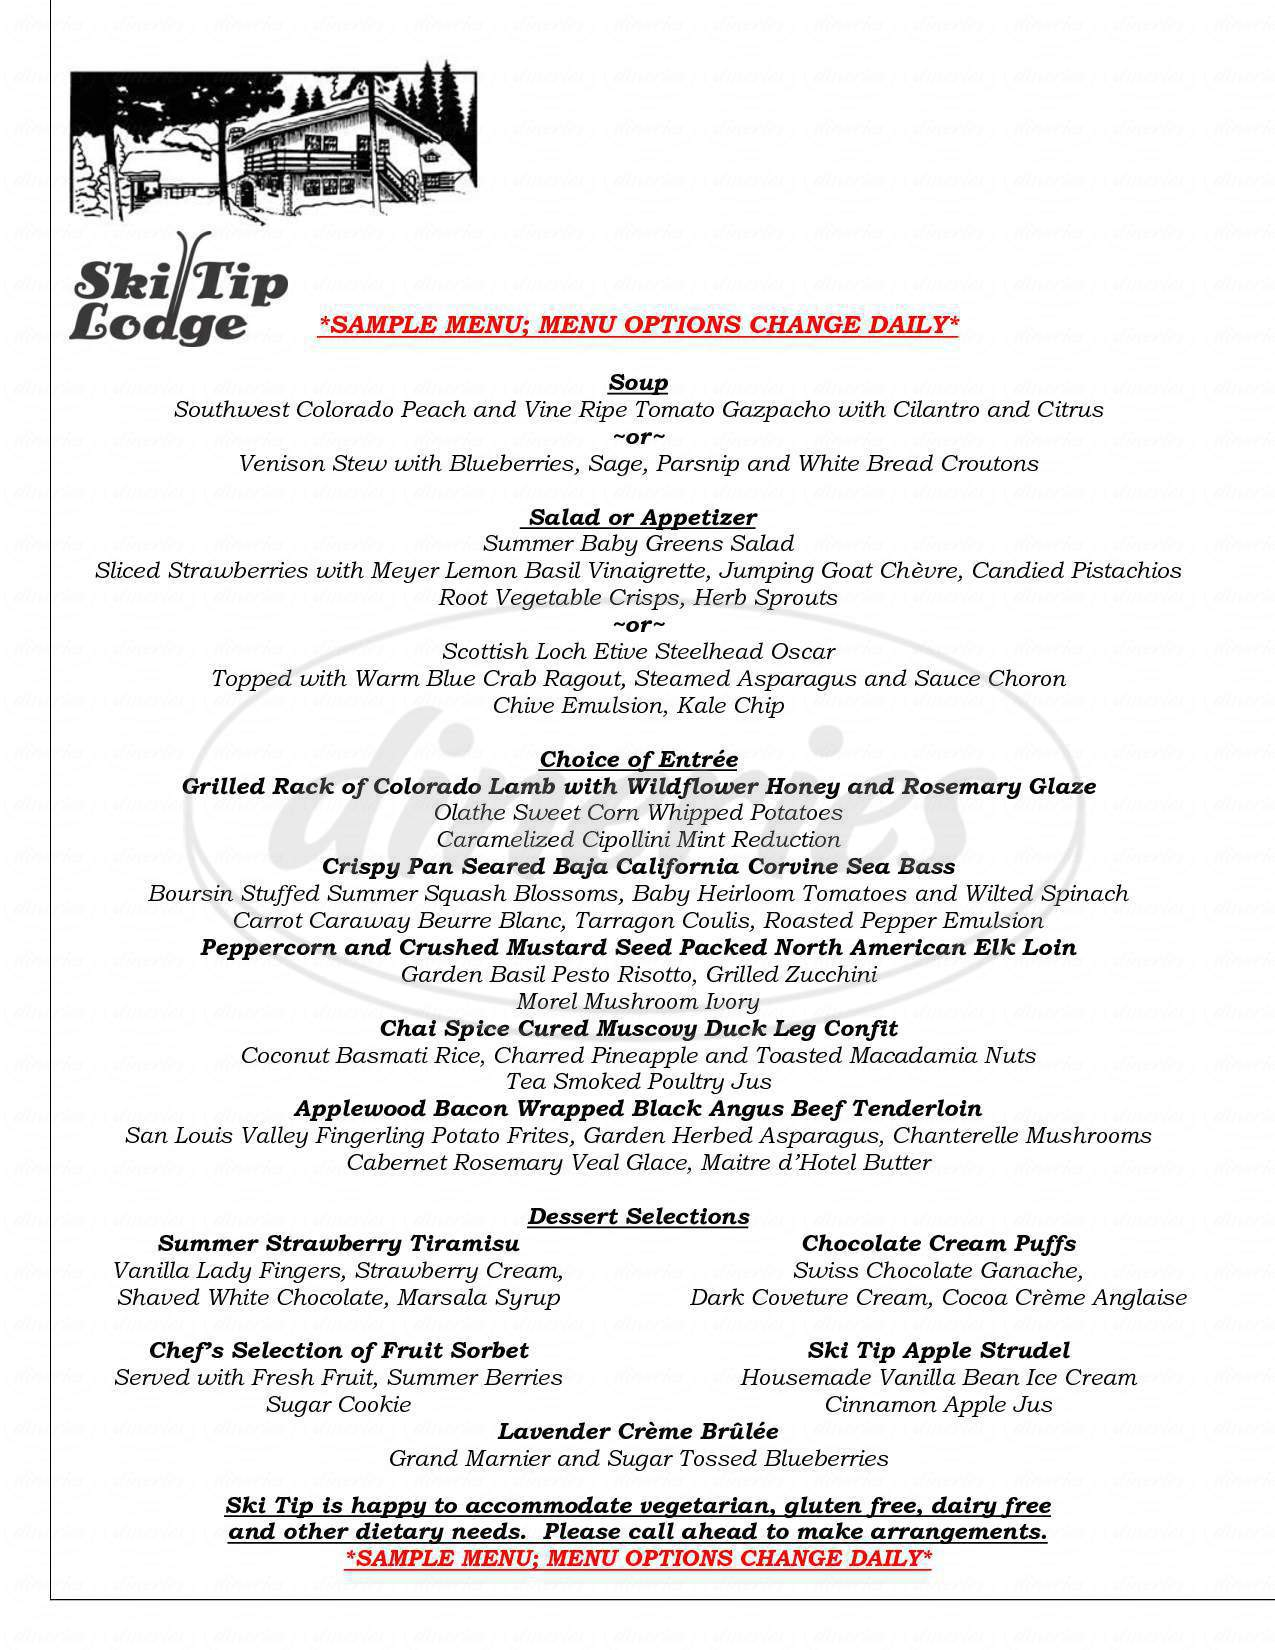 menu for Ski Tip Lodge